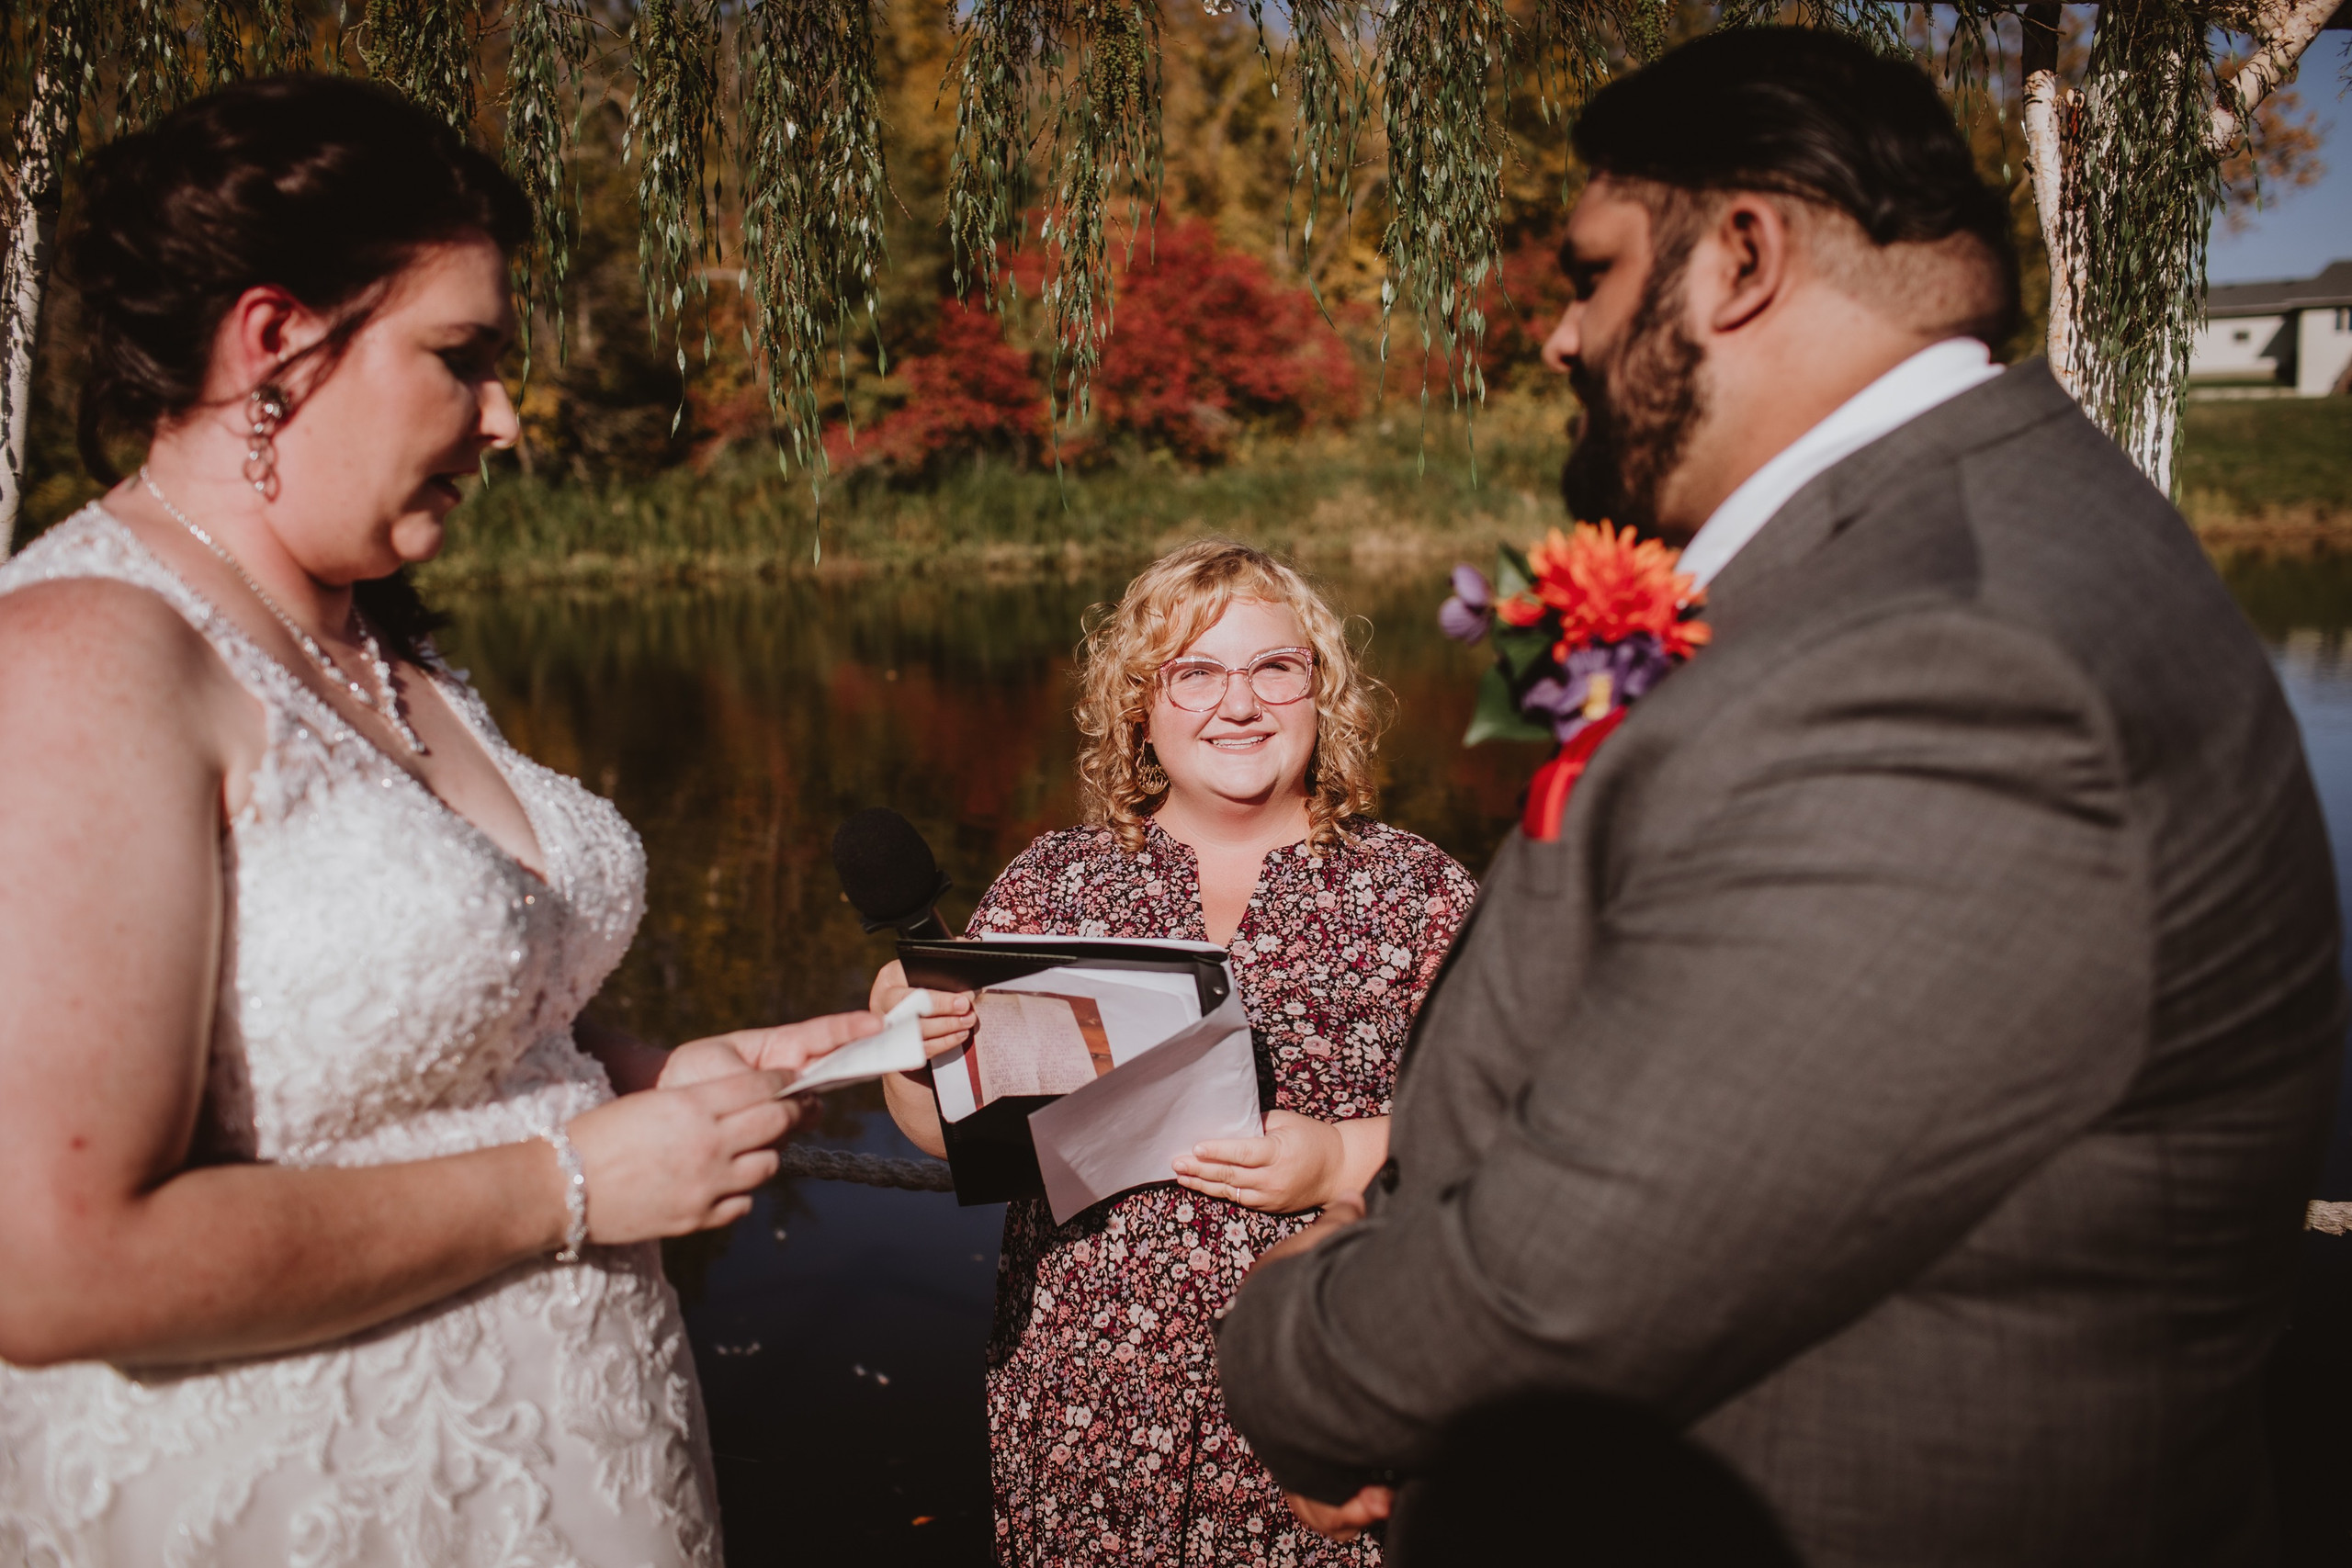 Robyn from A Perfect Ceremony I Do Performs Wedding ceremony during beautiful fall day.